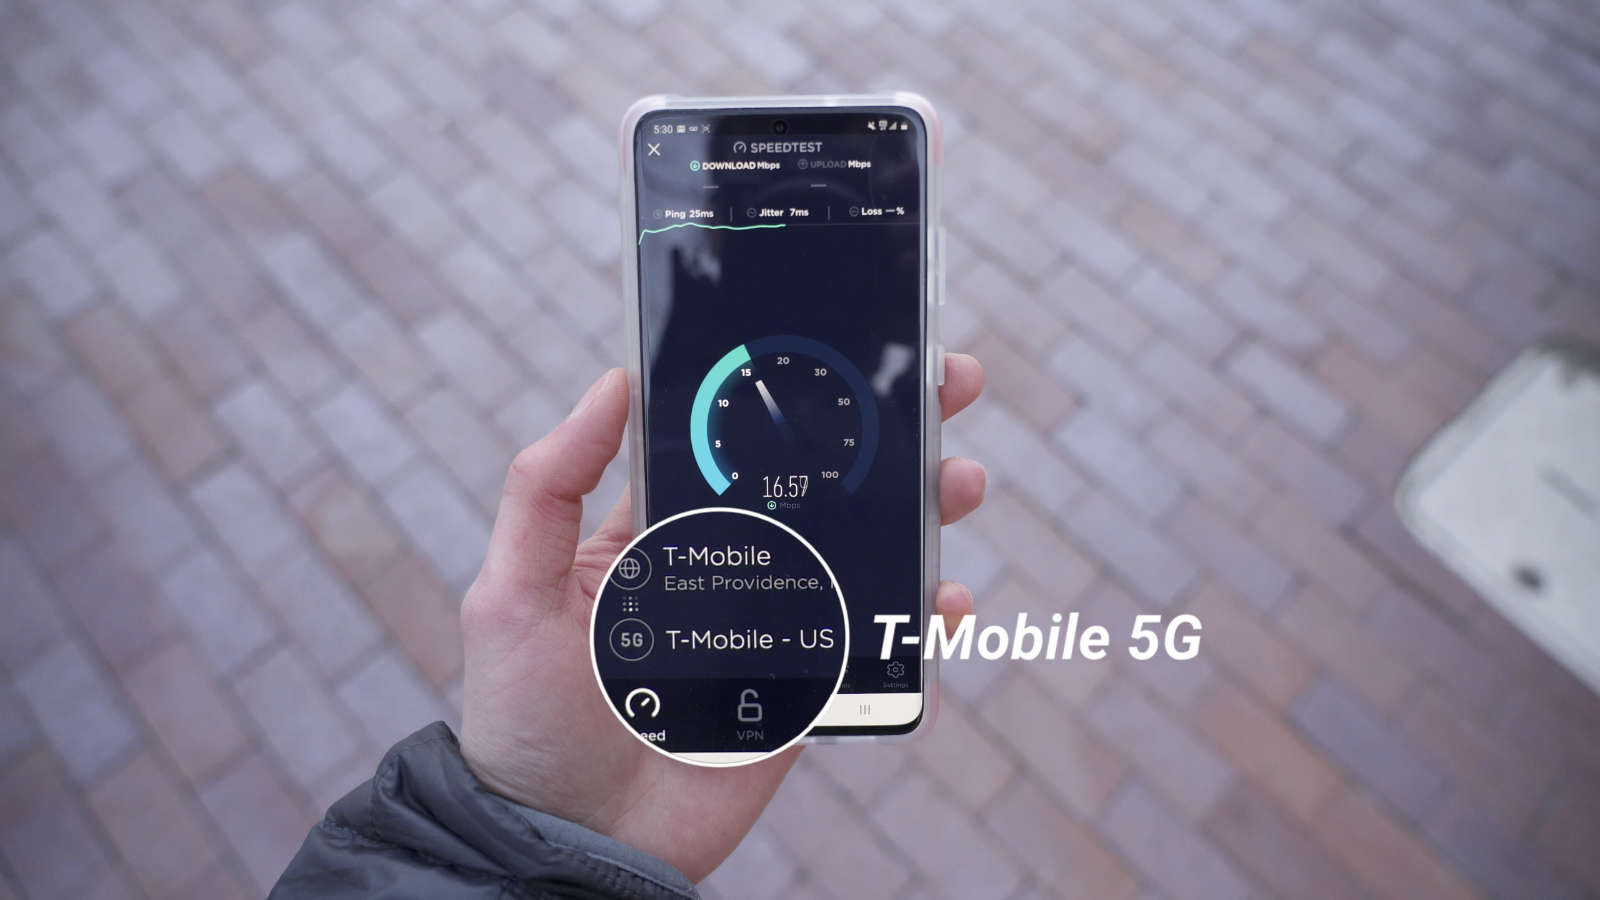 Mint Mobile supports 5G on T-Mobile's 5G network